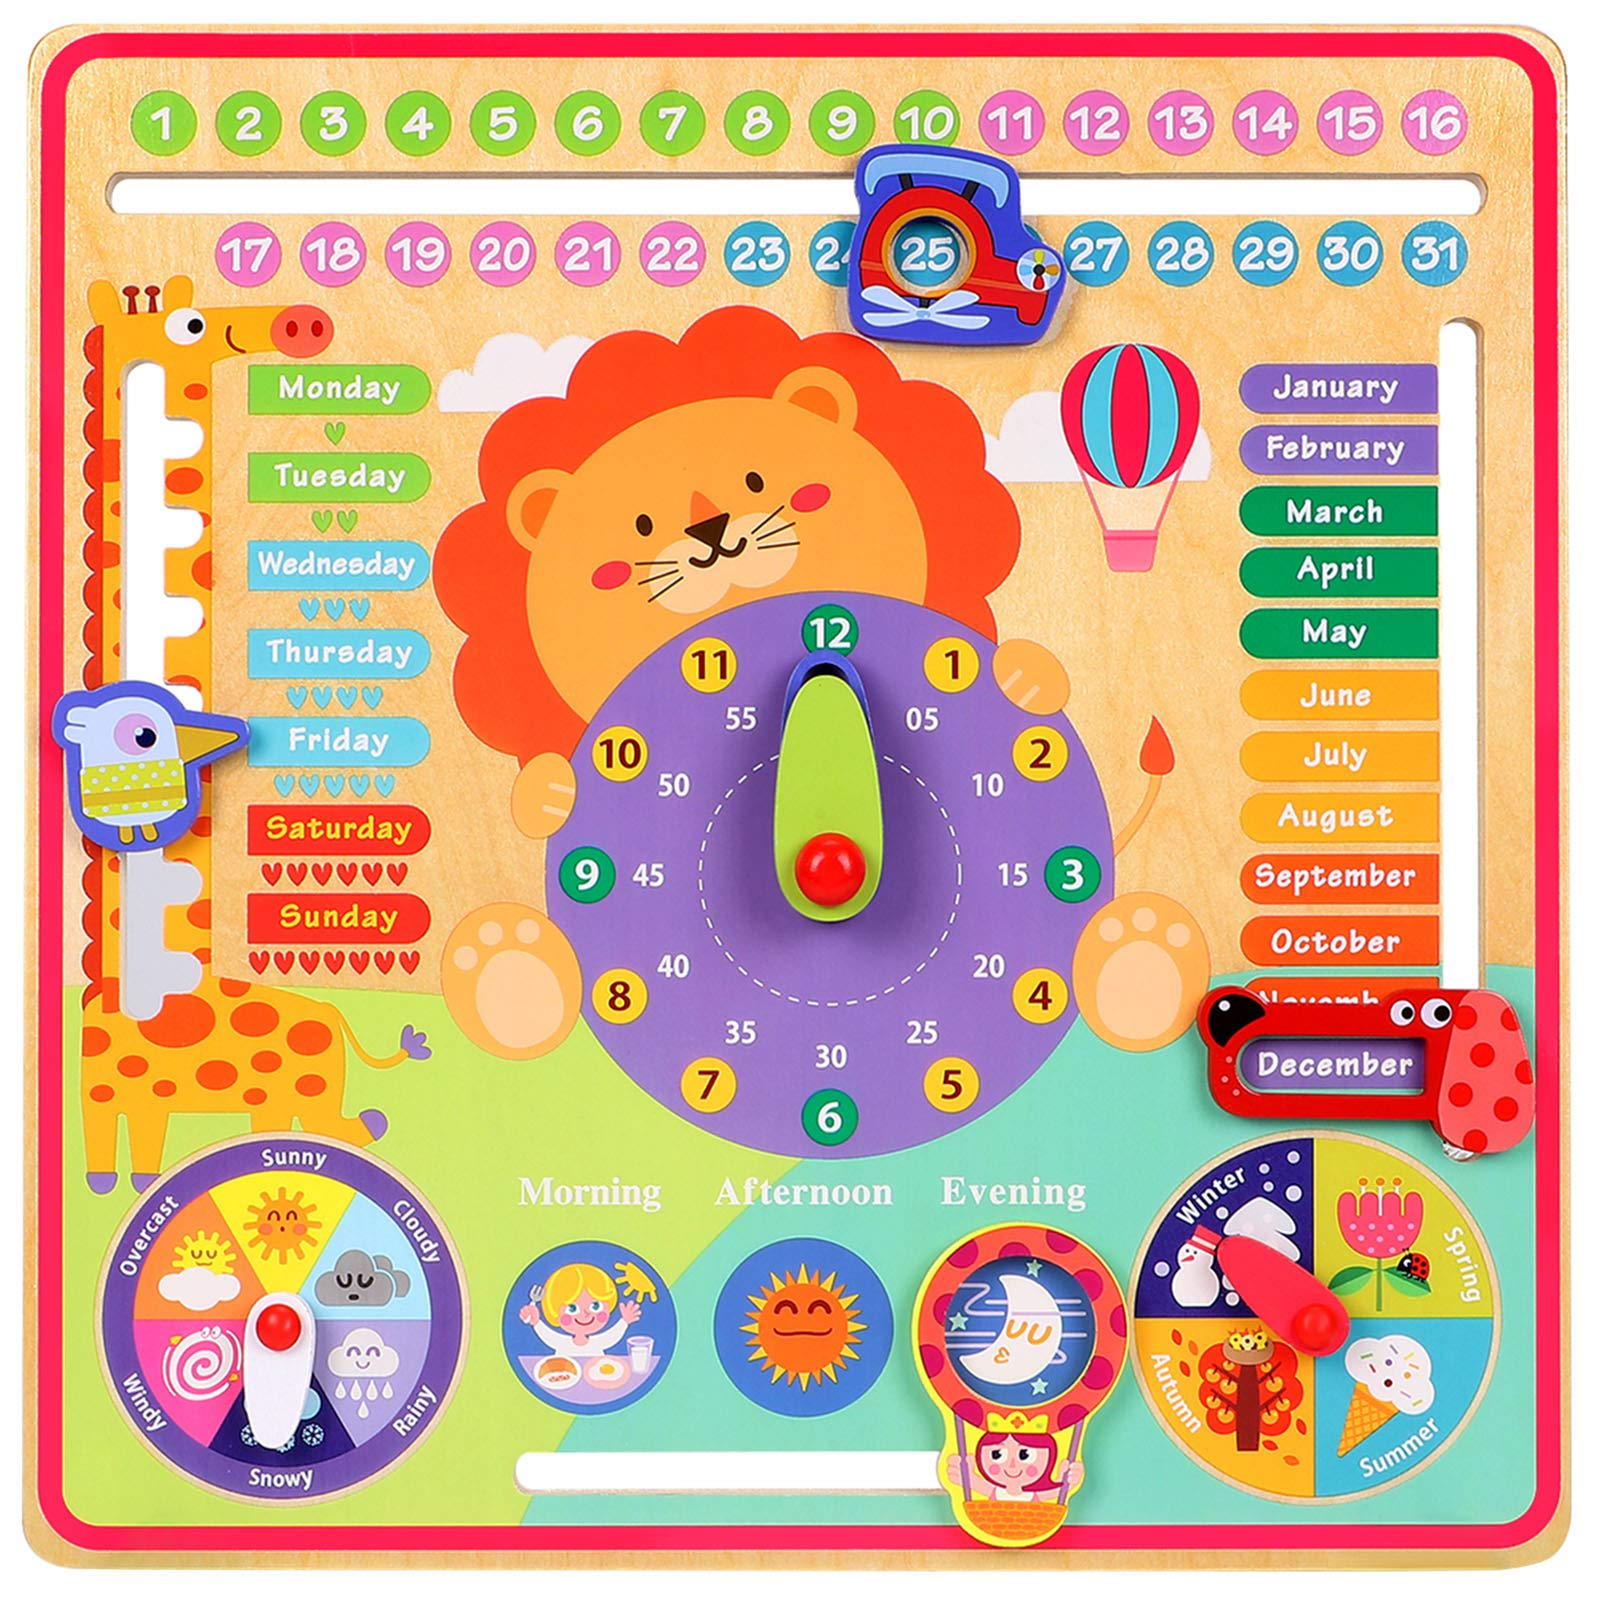 Toyssa 7 in 1 Kids Calendar Learning Clock My First Calendar Wooden Toys Educational Clock Montessori Toys for Toddlers Kids Boys Girl Christmas Birthday Gifts